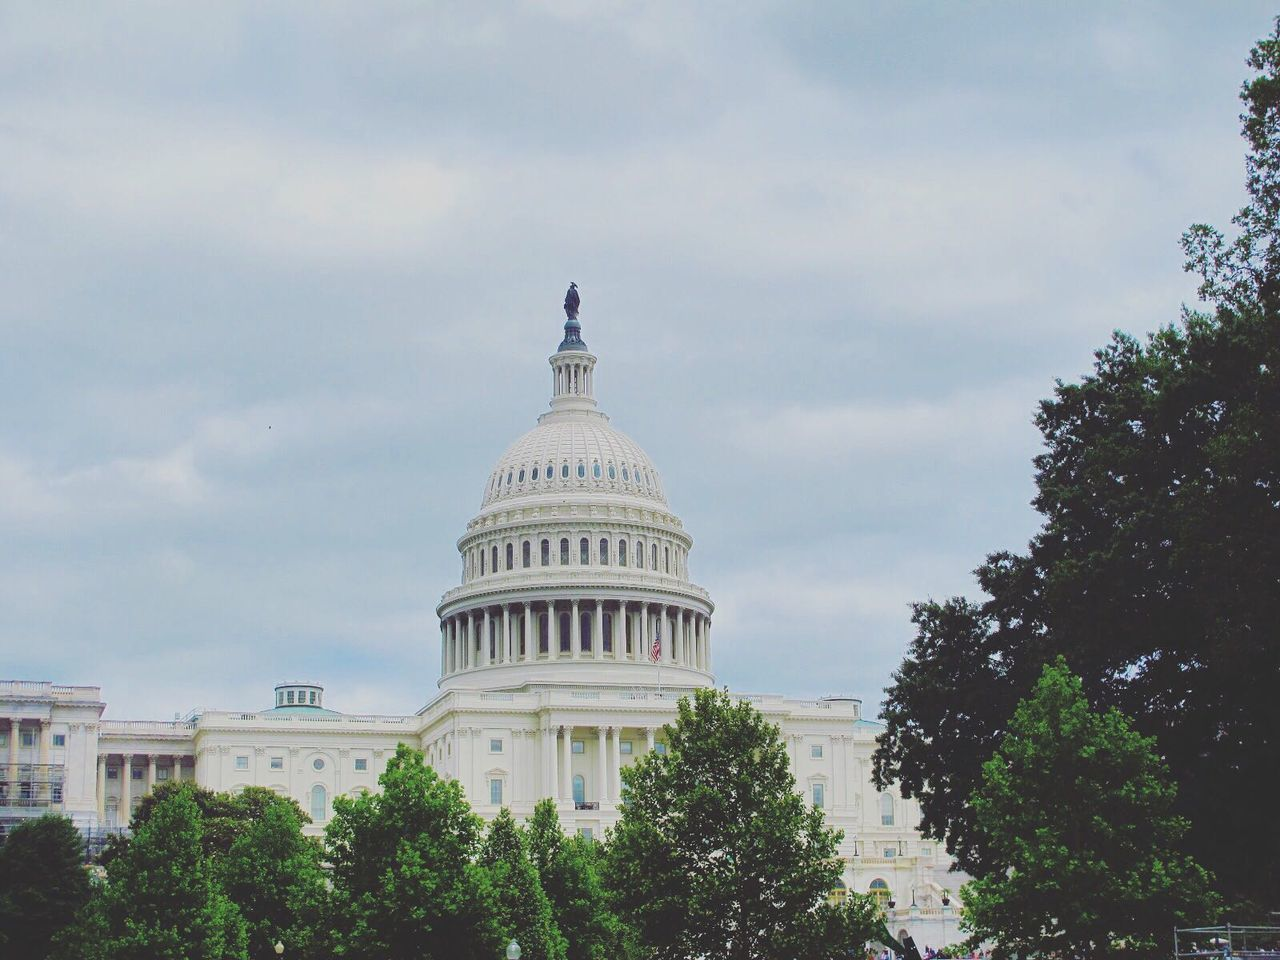 government, architecture, dome, built structure, building exterior, sky, tree, day, cloud - sky, no people, authority, city, outdoors